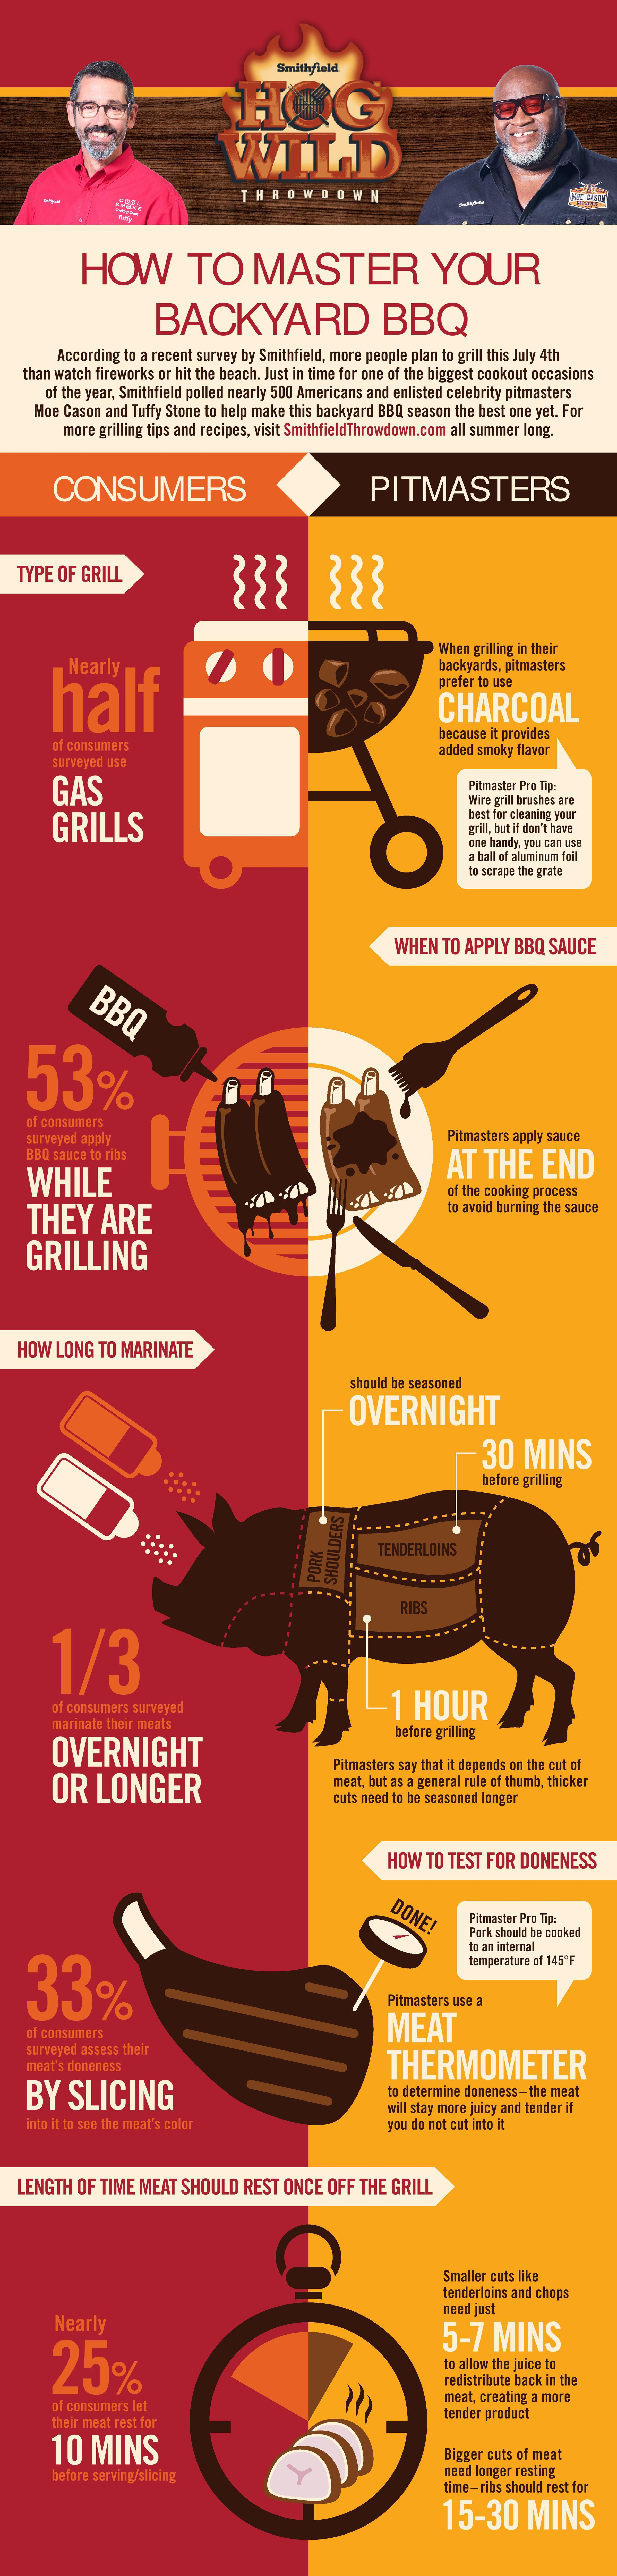 Mastering Your Backyard BBQ Infographic